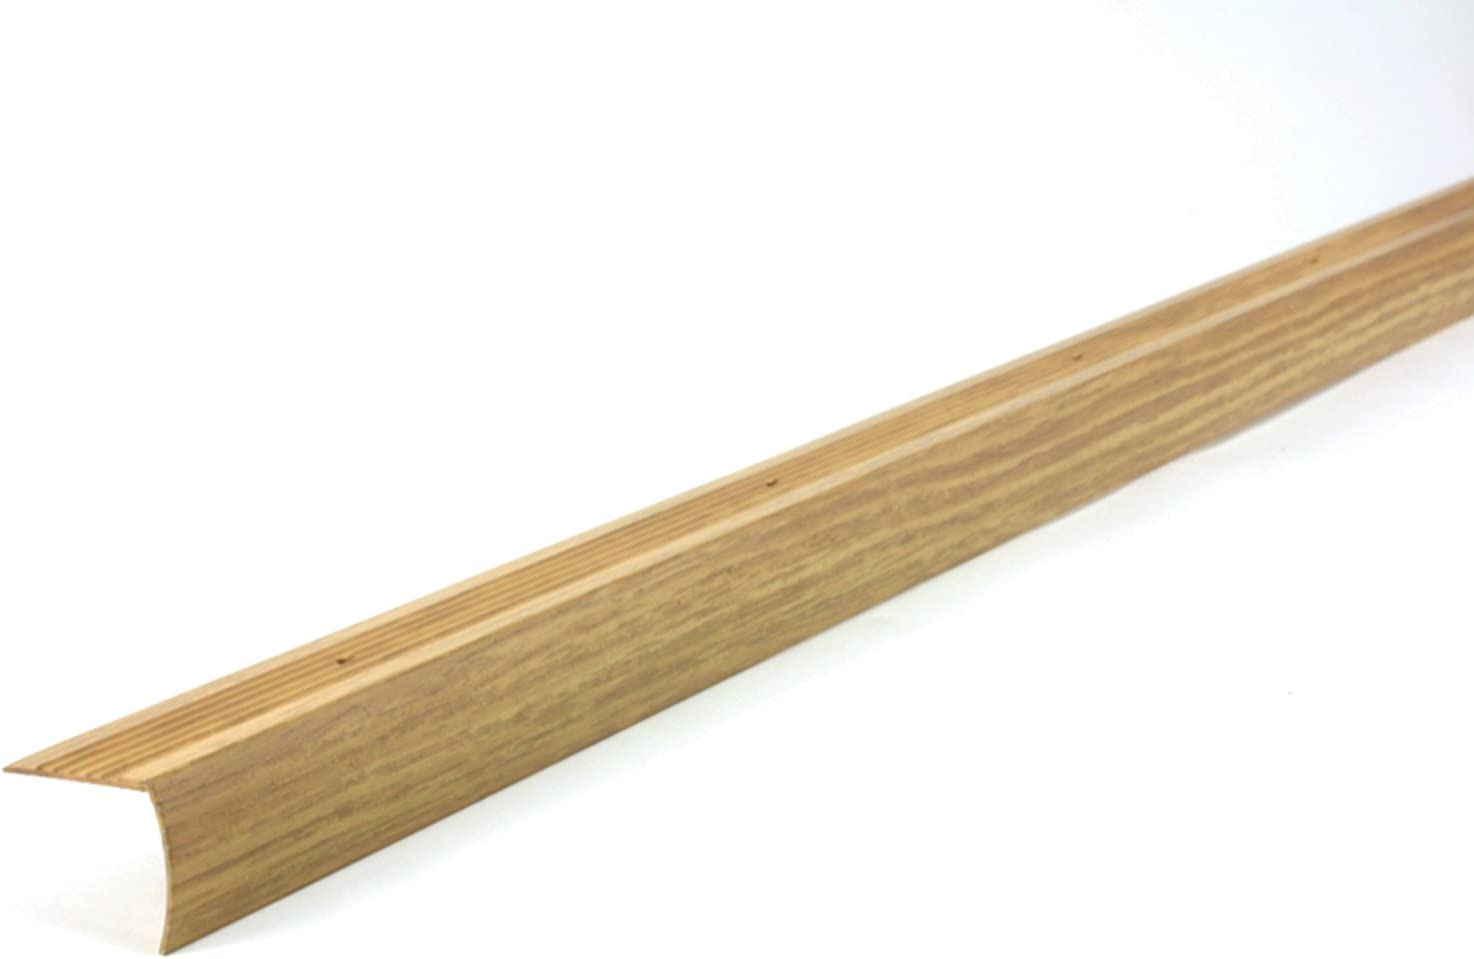 M-D Building Products 32009 36-Inch Stair Edging, MetalDecor Finish